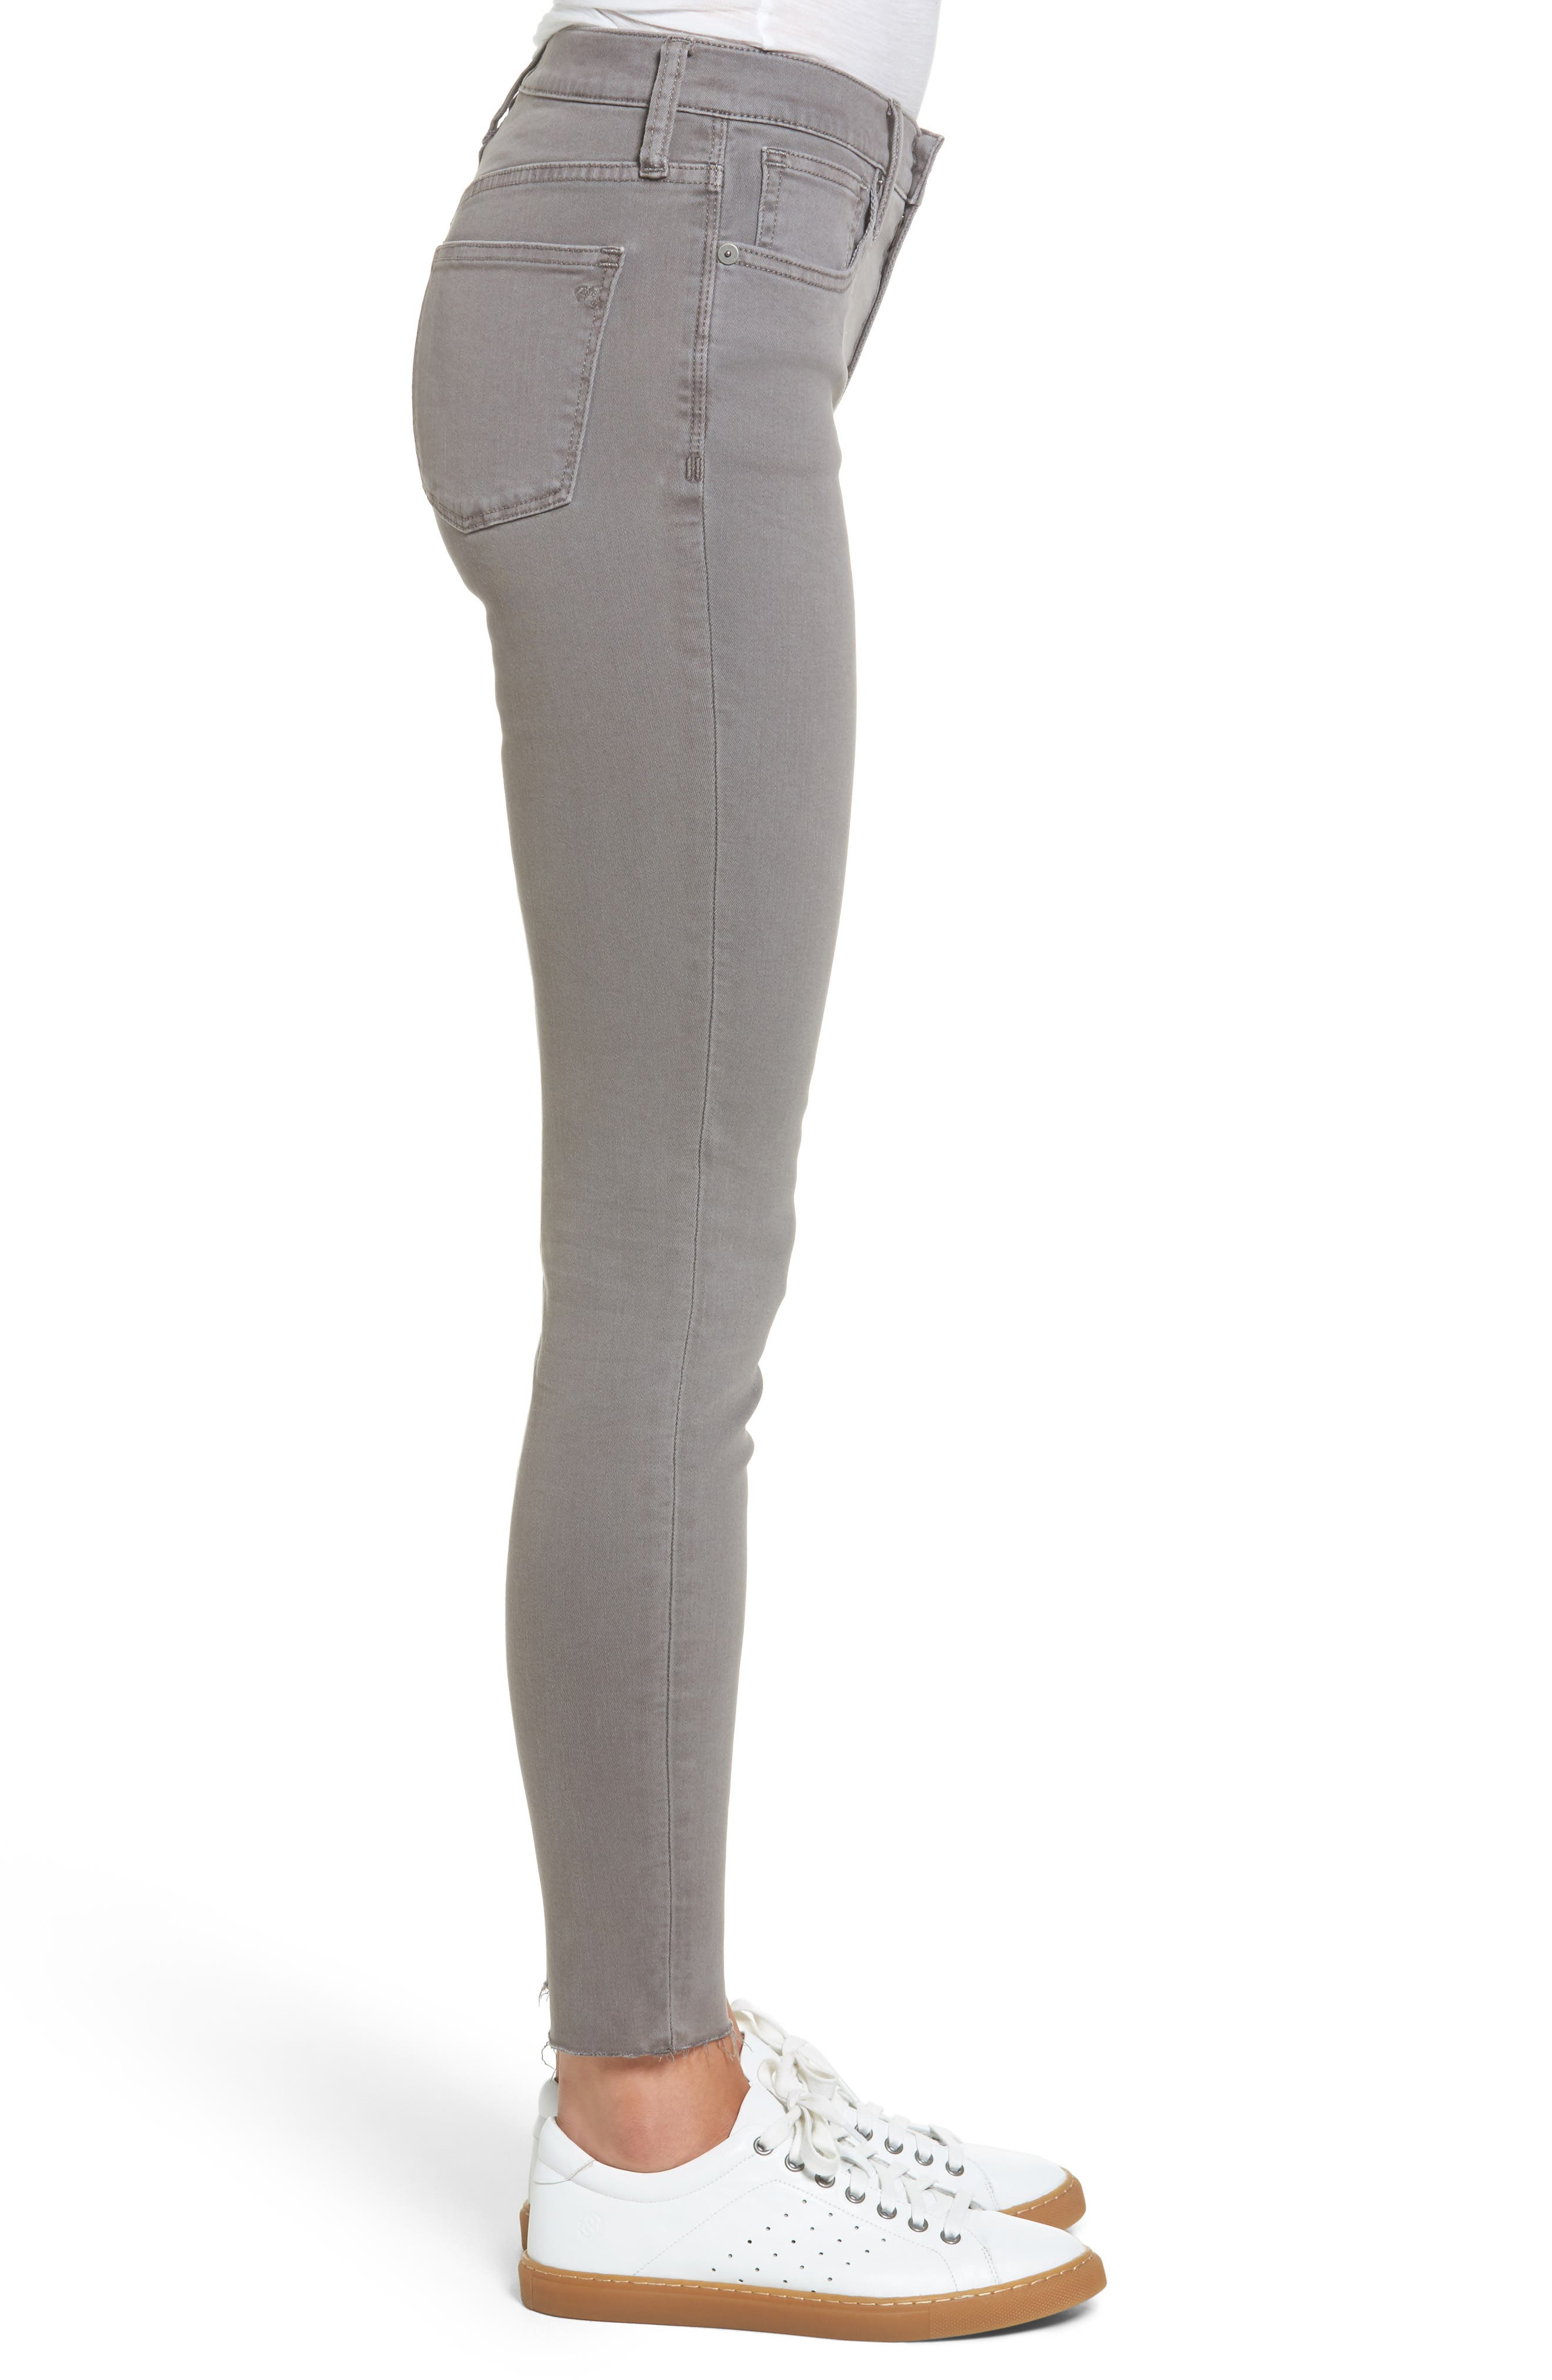 9-Inch High-Rise Skinny Jeans: Raw-Hem Garment-Dyed Edition,                             Alternate thumbnail 3, color,                             020